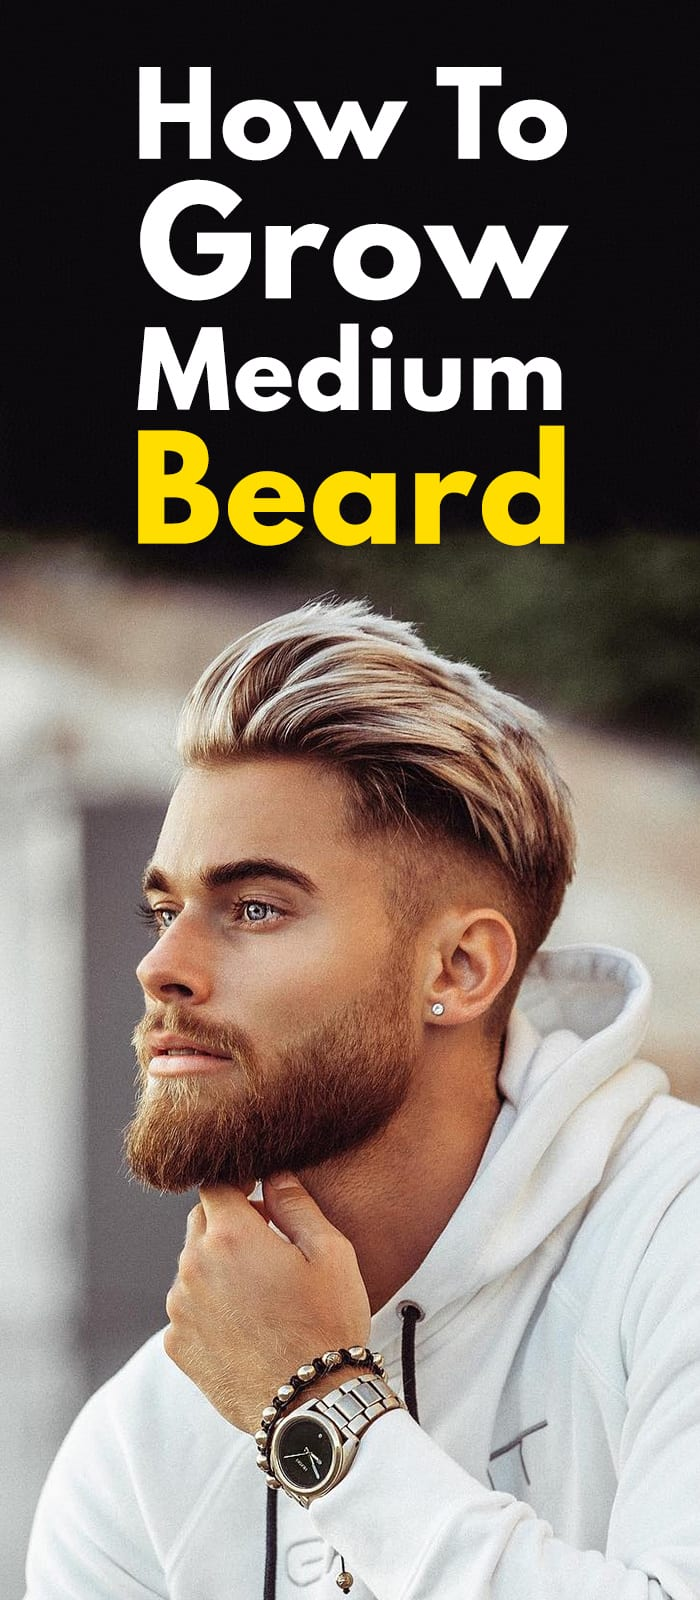 How To Grow Medium Beard.